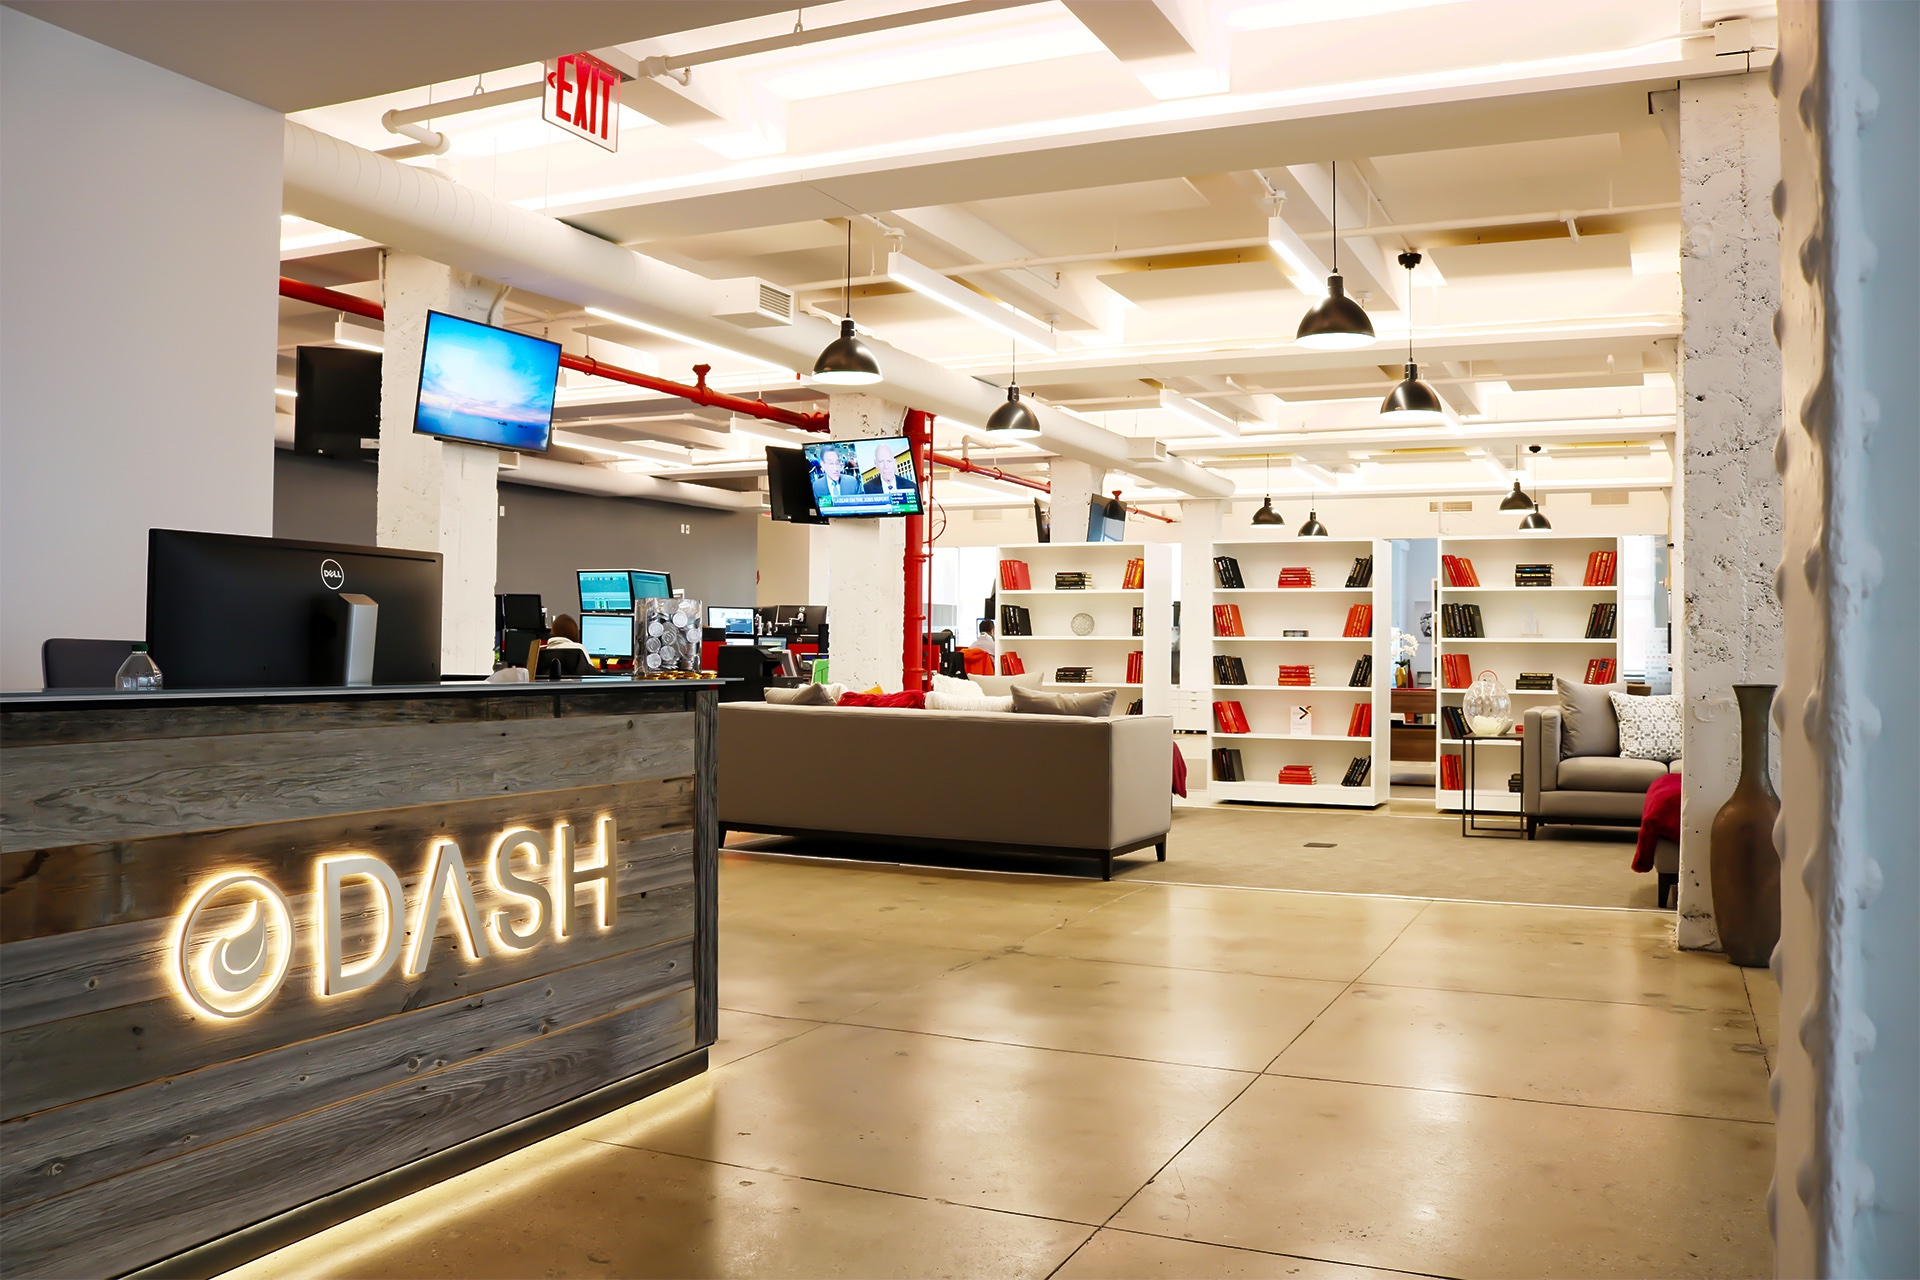 Dash offices